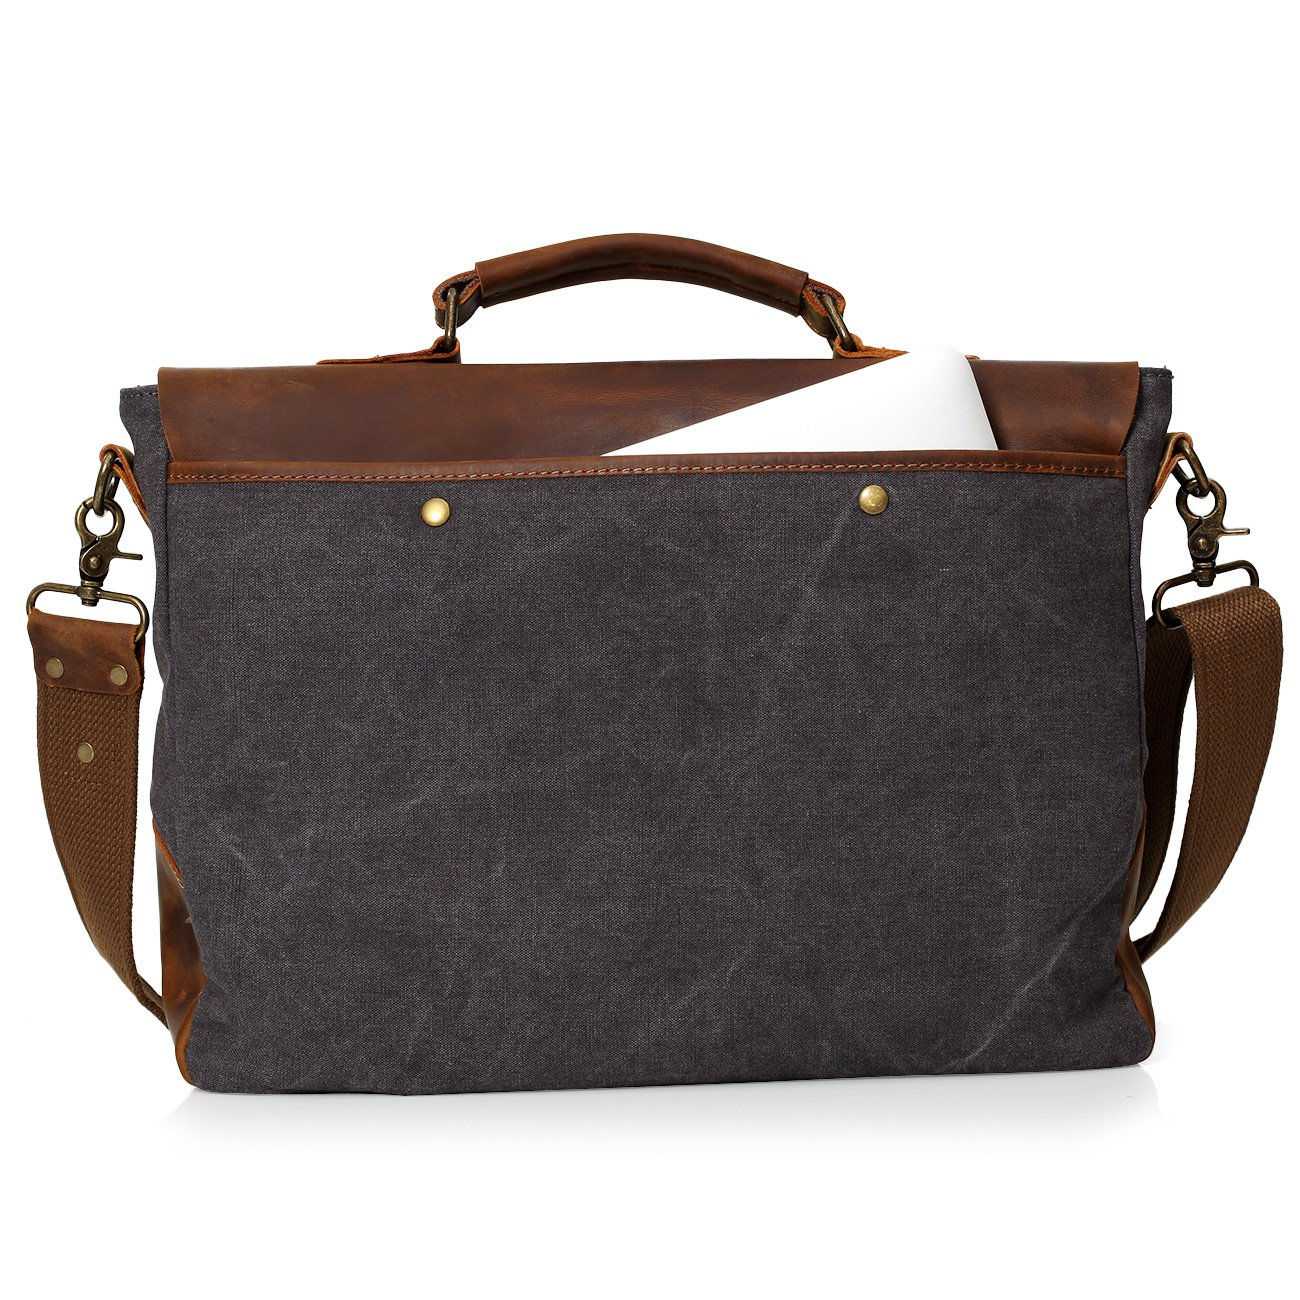 Gray x 4.1 x10.5 W Gray L x10.5 Vintage Canvas Real Leather 14-inch Laptop Briefcase for Everday use 13 H x 4.1 H W Wowbox Messenger Satchel Bag for Men and Women,Vintage Canvas Real Leather 14-inch Laptop Briefcase for Everday use 13 L